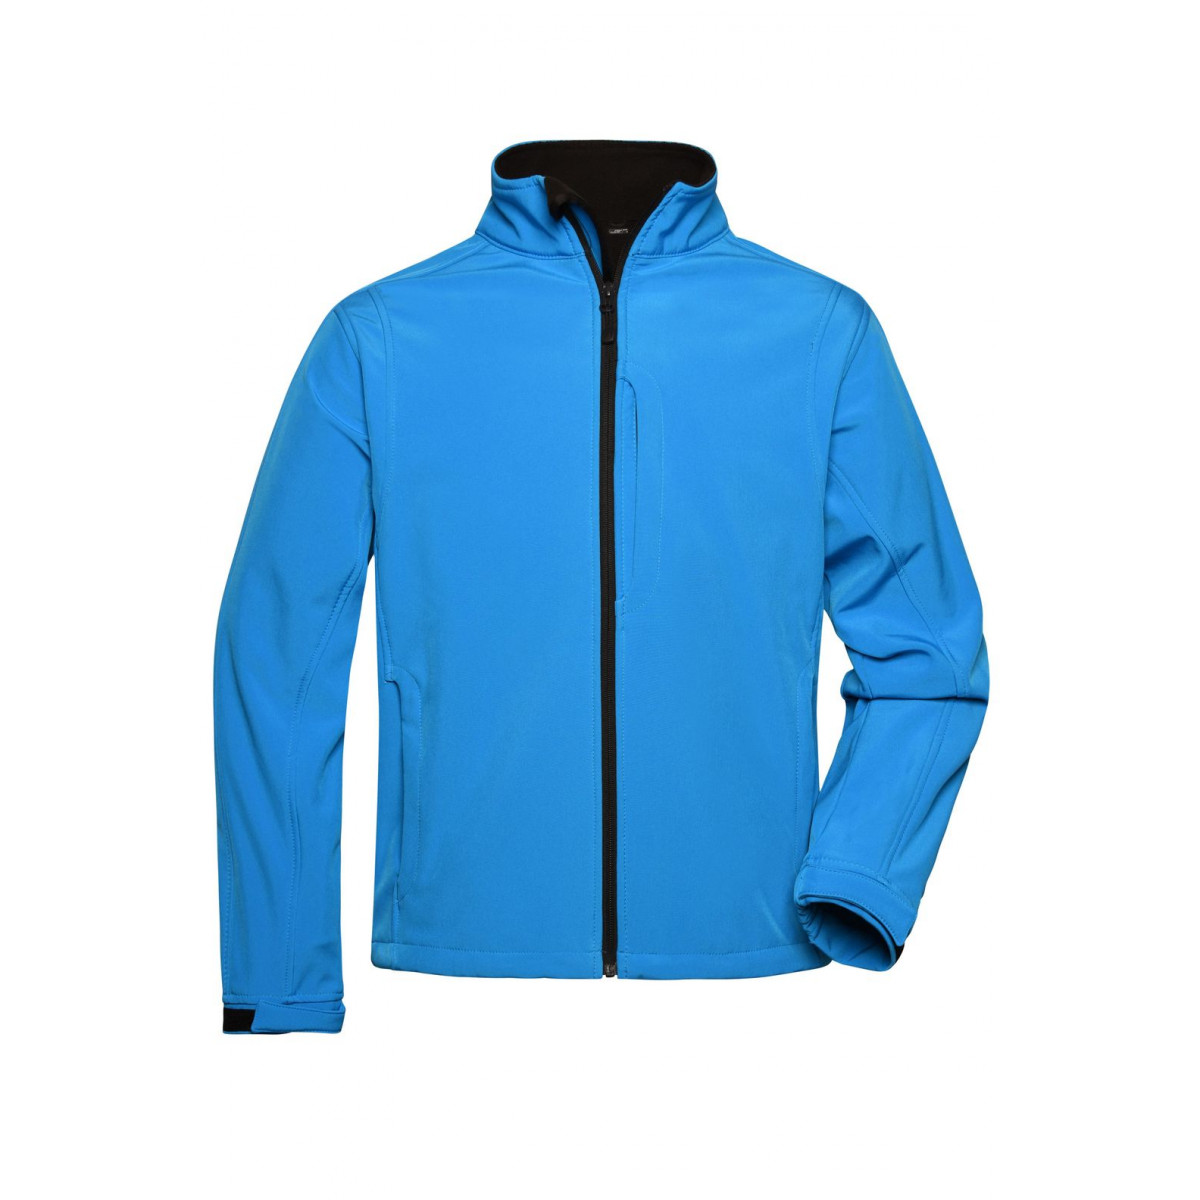 Куртка мужская JN135 Mens Softshell Jacket - Аква